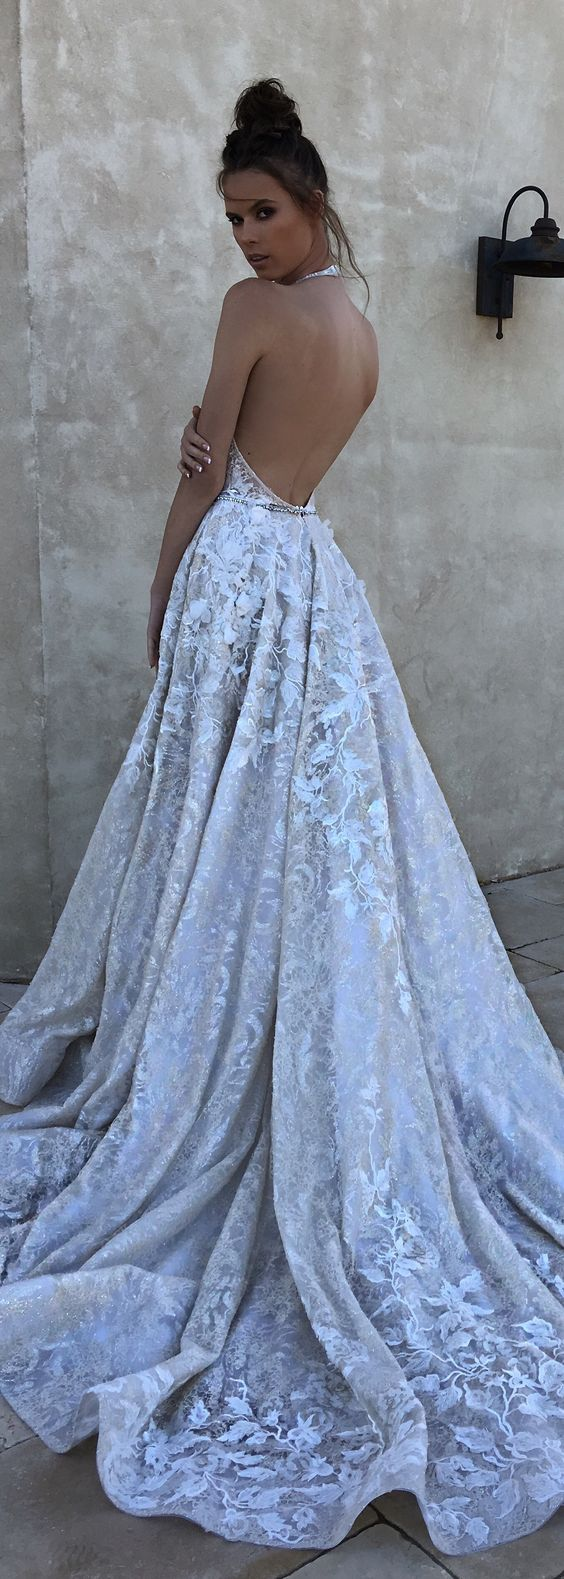 923 best wedding ideas images on Pinterest | Wedding frocks, Short ...